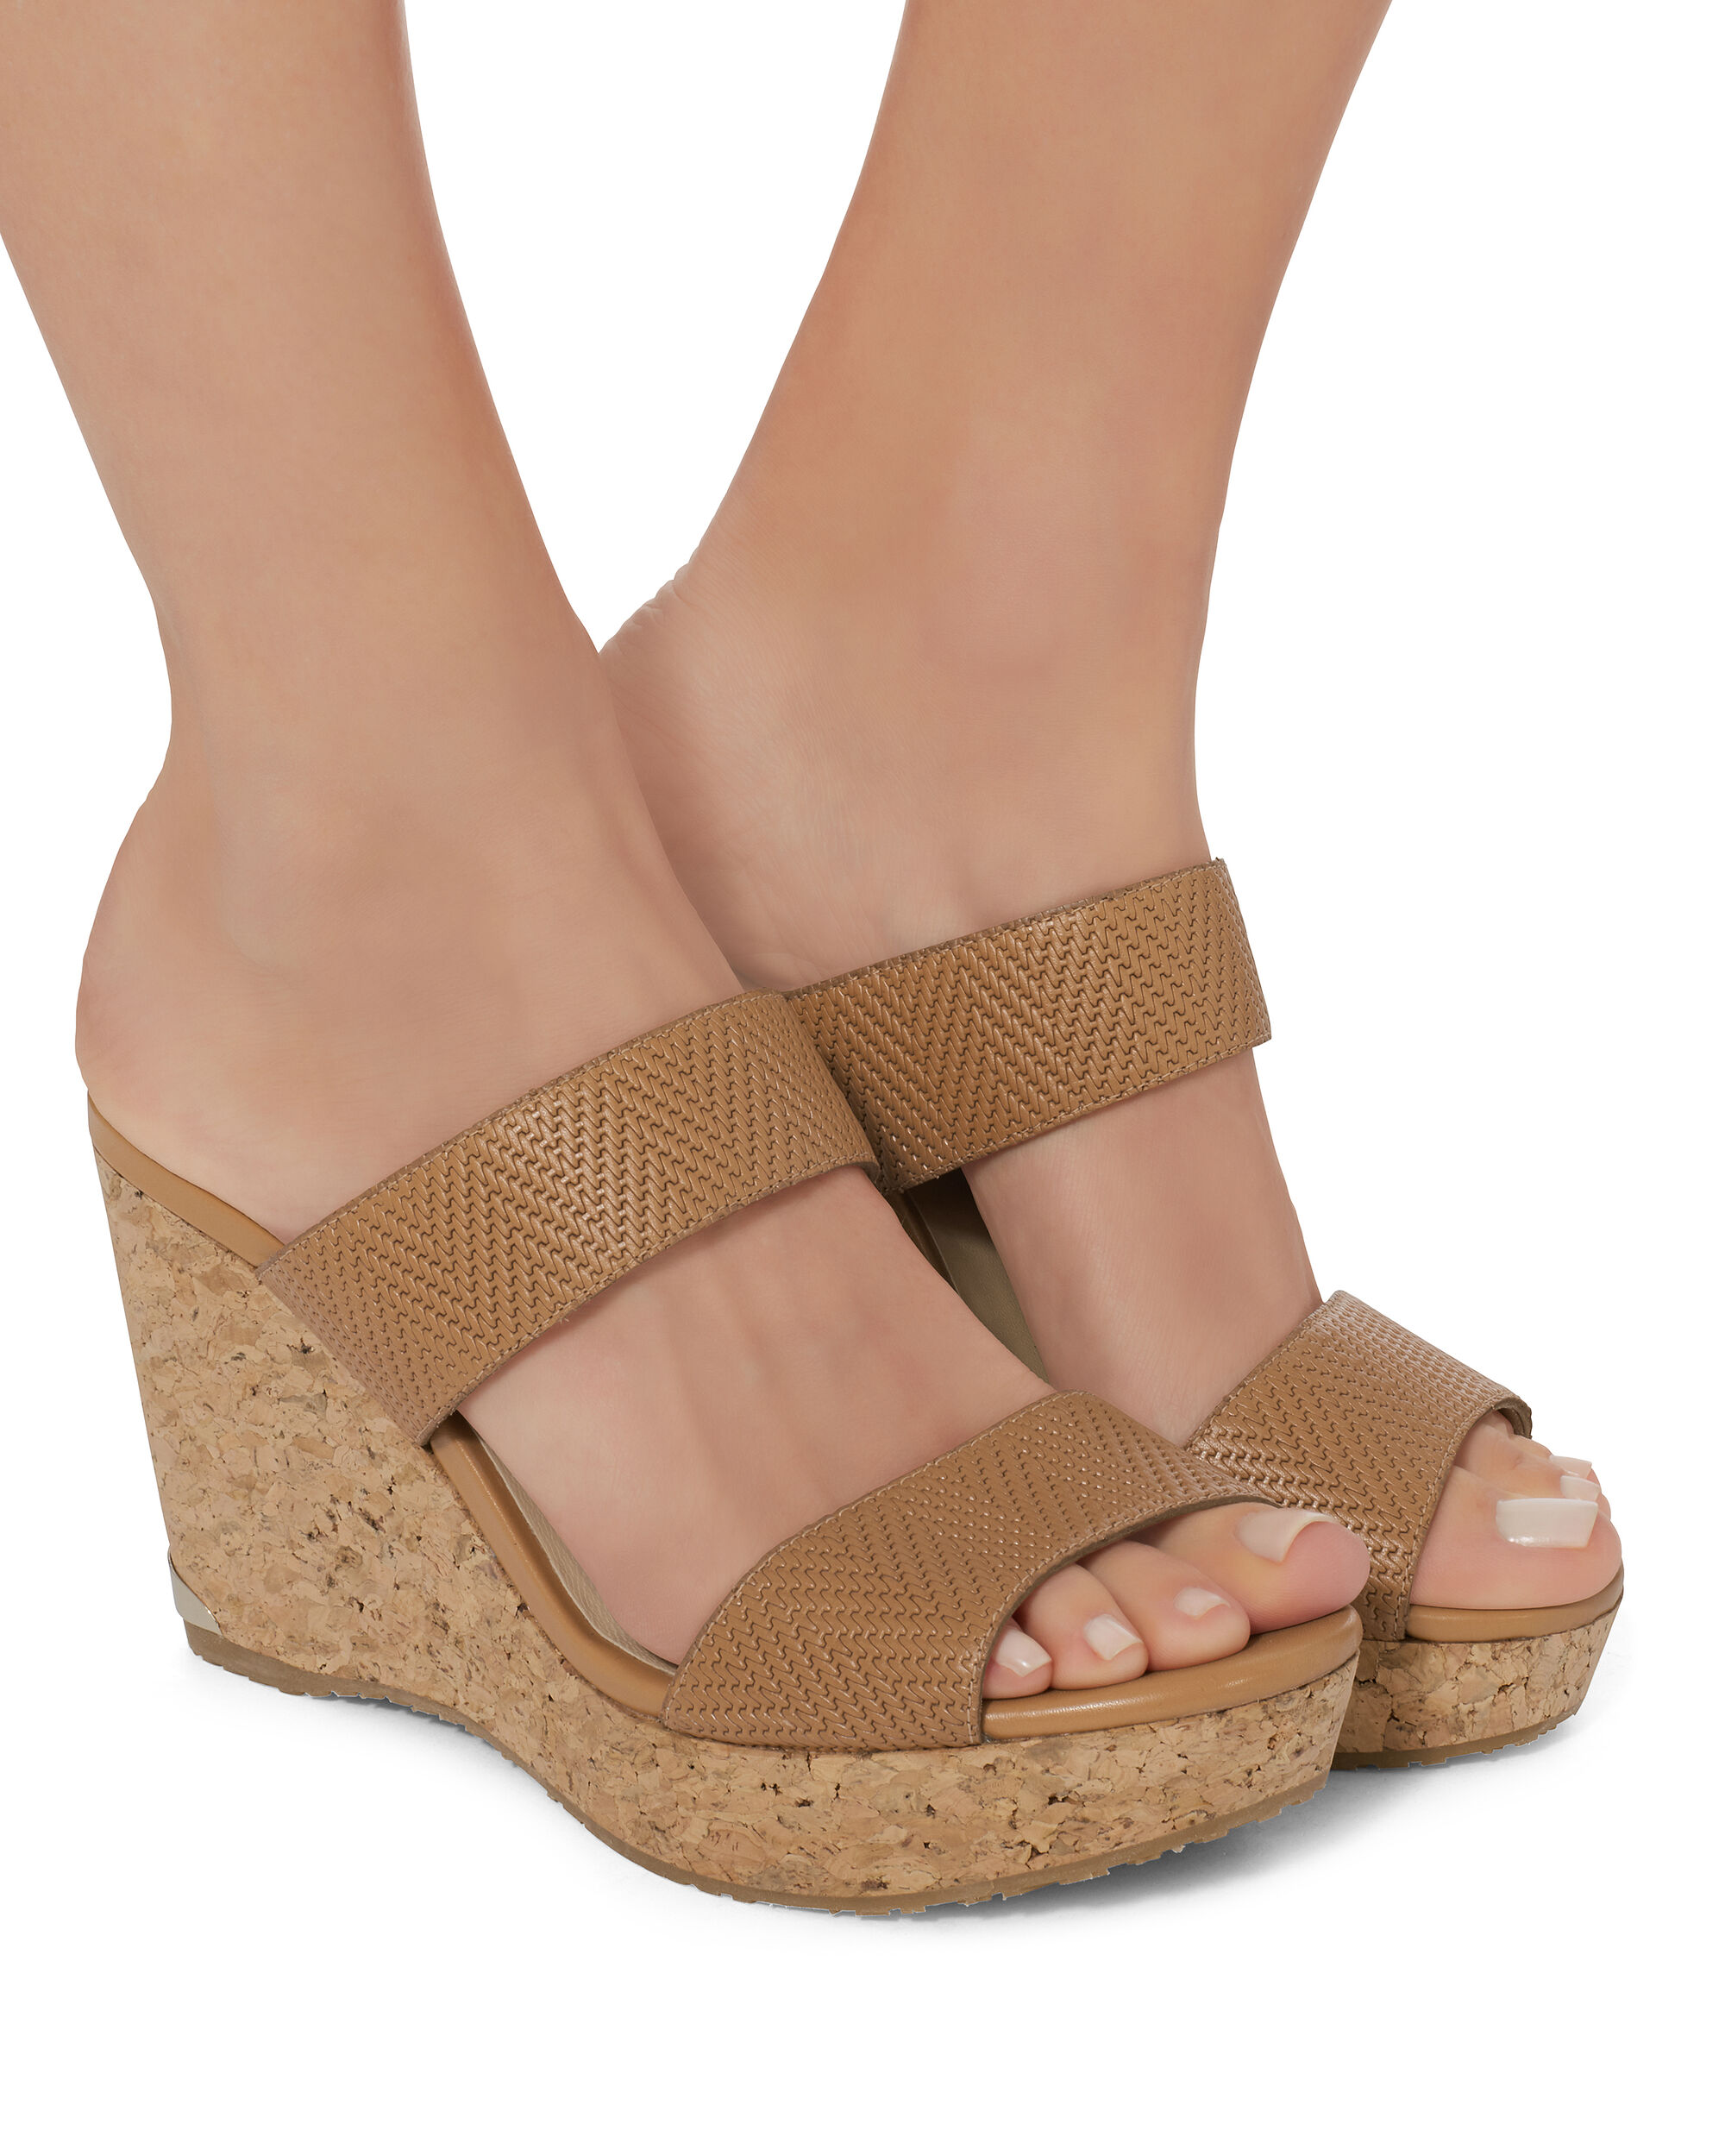 Parker Wedge Sandals, BROWN, hi-res